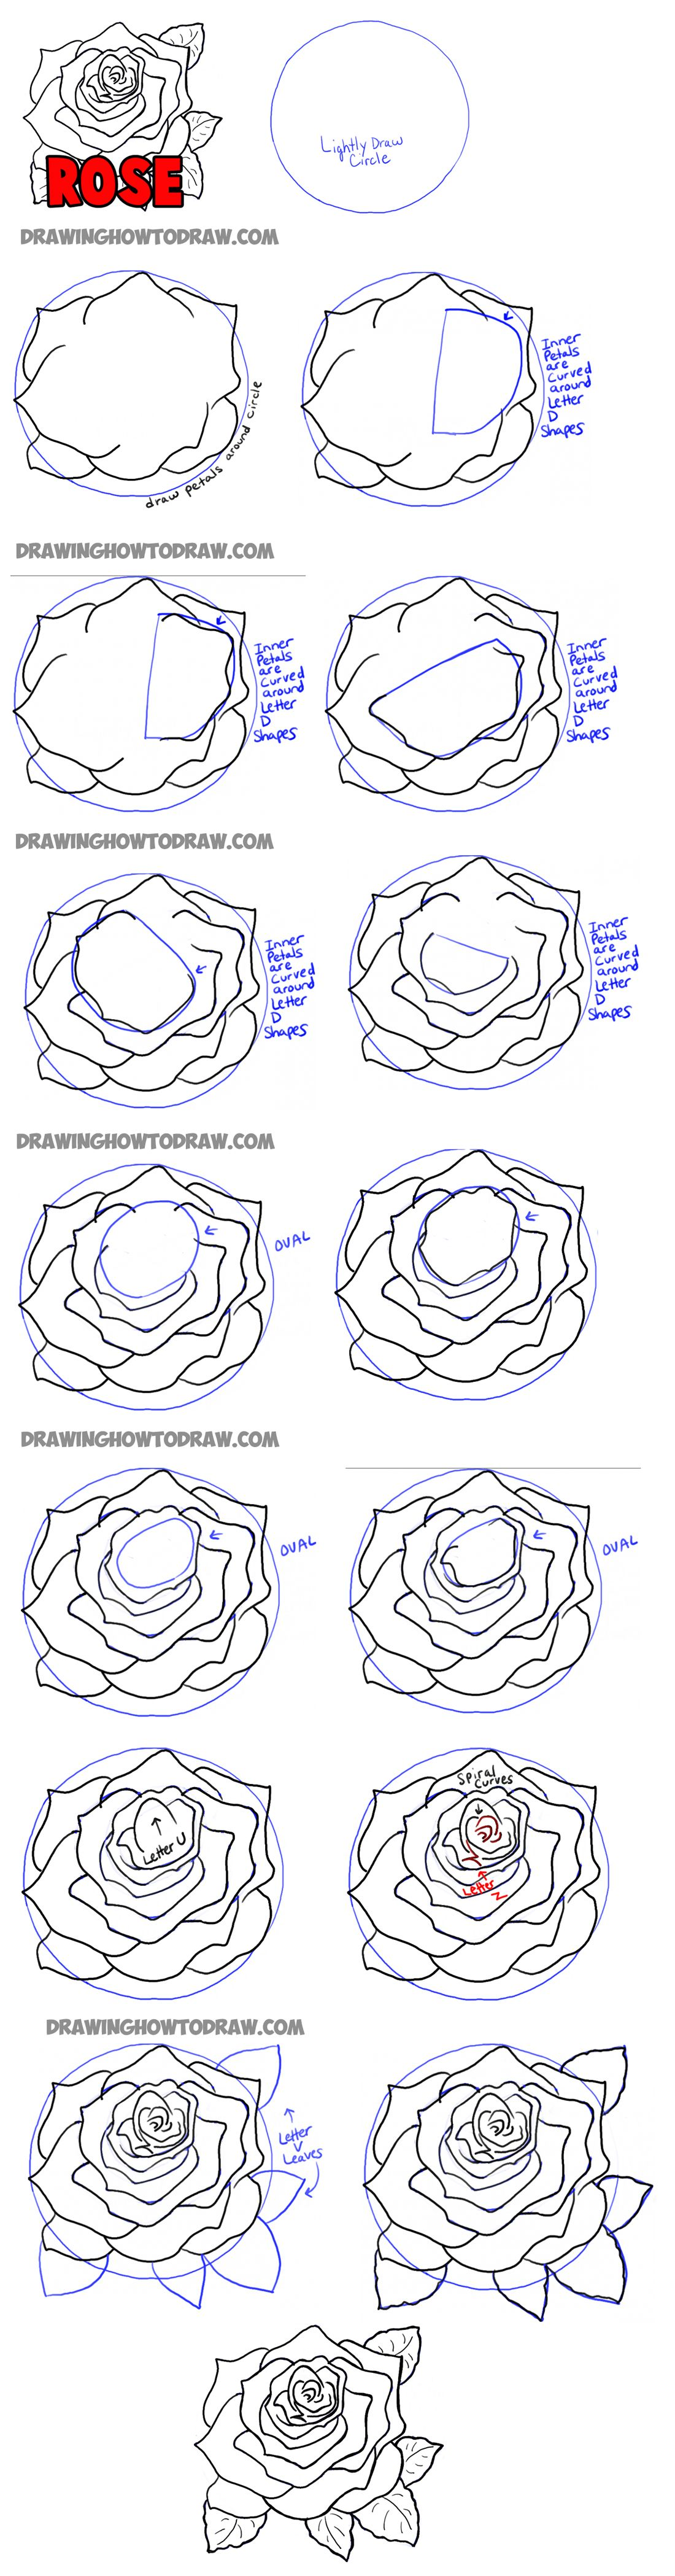 how to draw roses step by step | Pictures/Drawings ... - photo#26